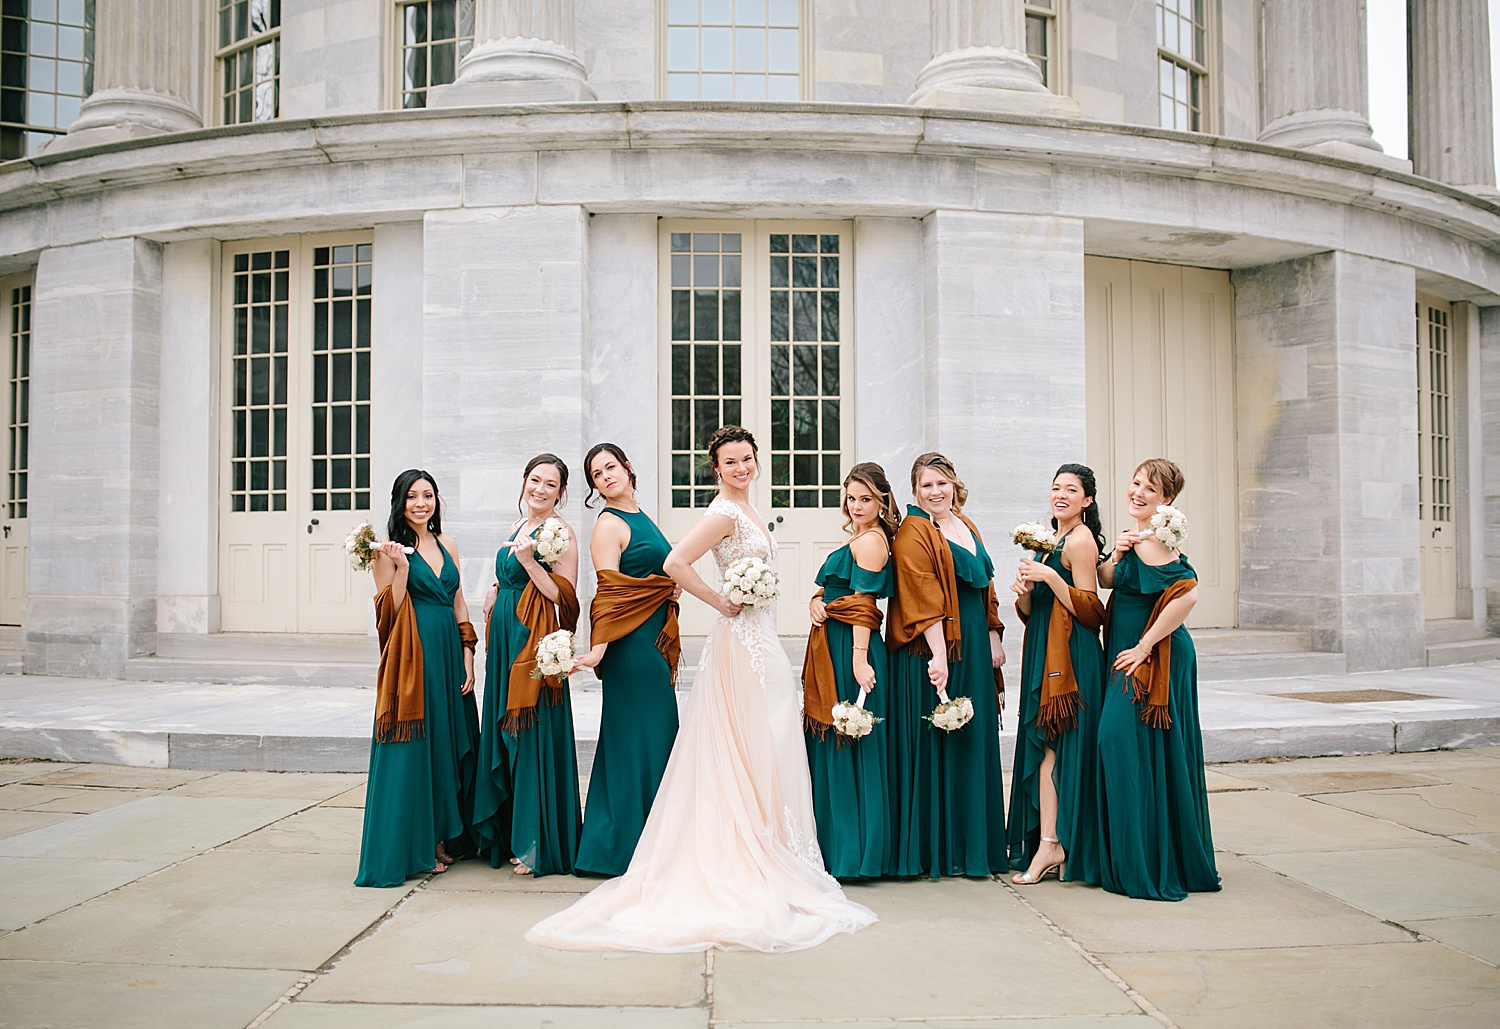 kirstentony_uniontrust_finleycatering_christchurch_philadelphia_wedding_image_0694.jpg